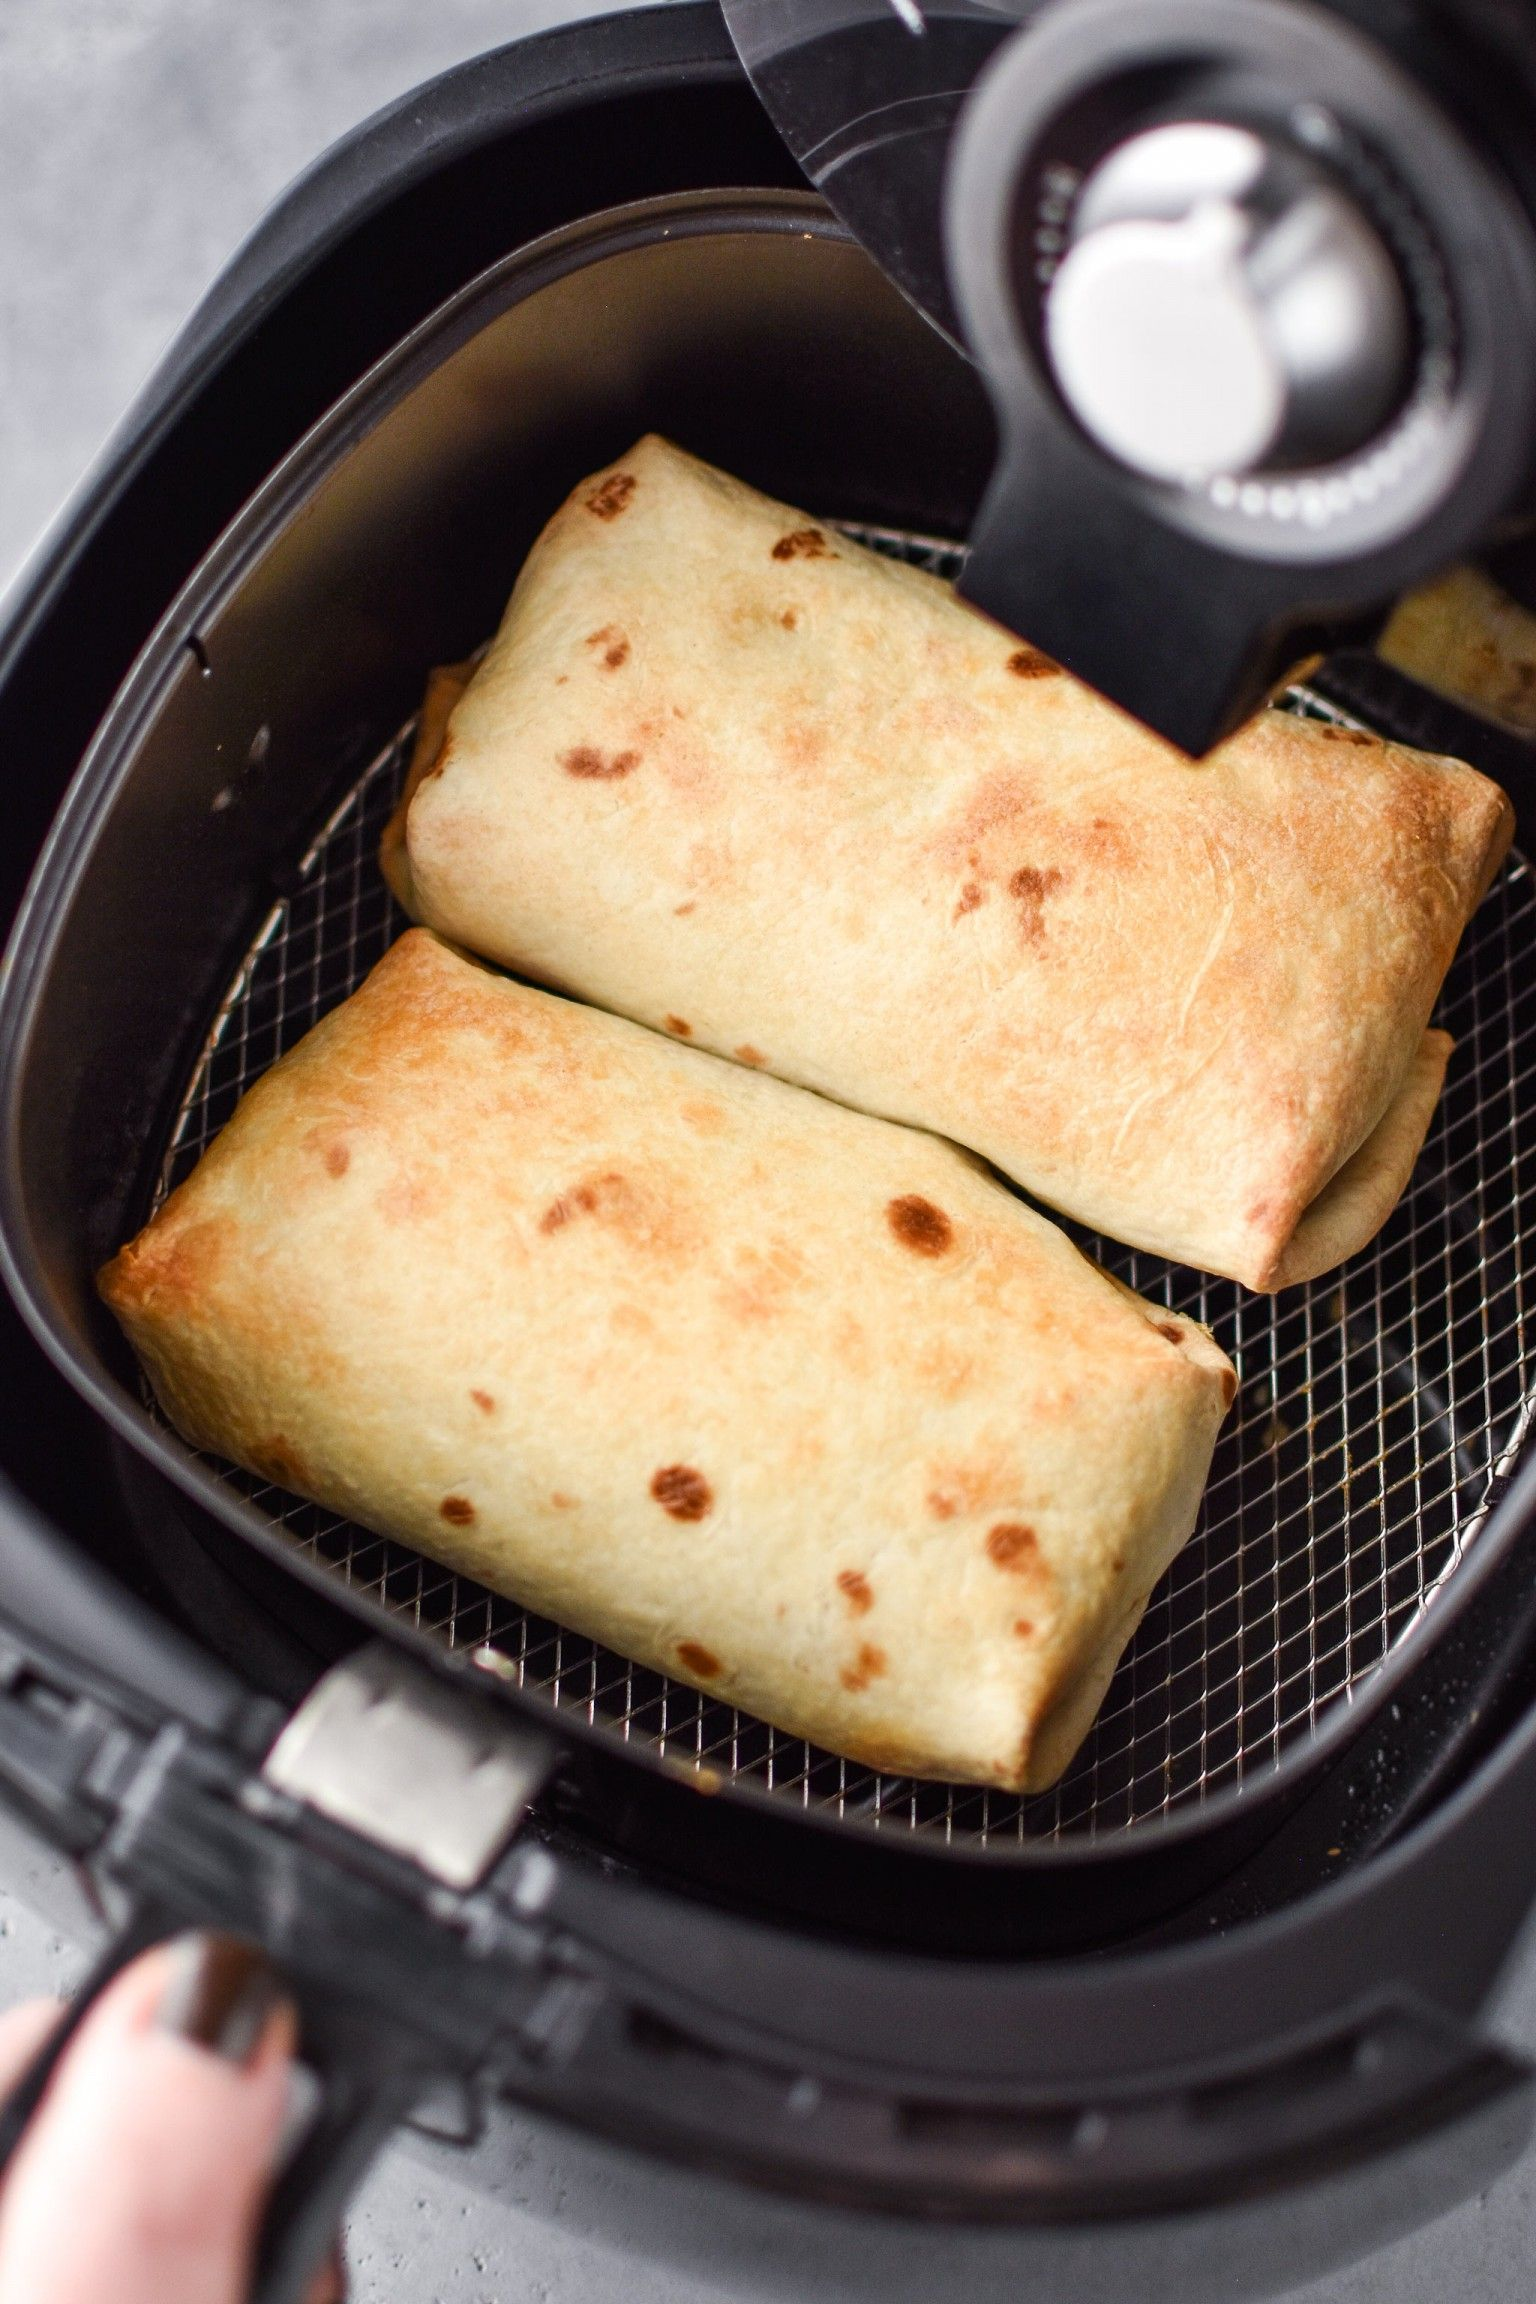 How to Make Chimichangas in an Air Fryer #airfryerrecipes